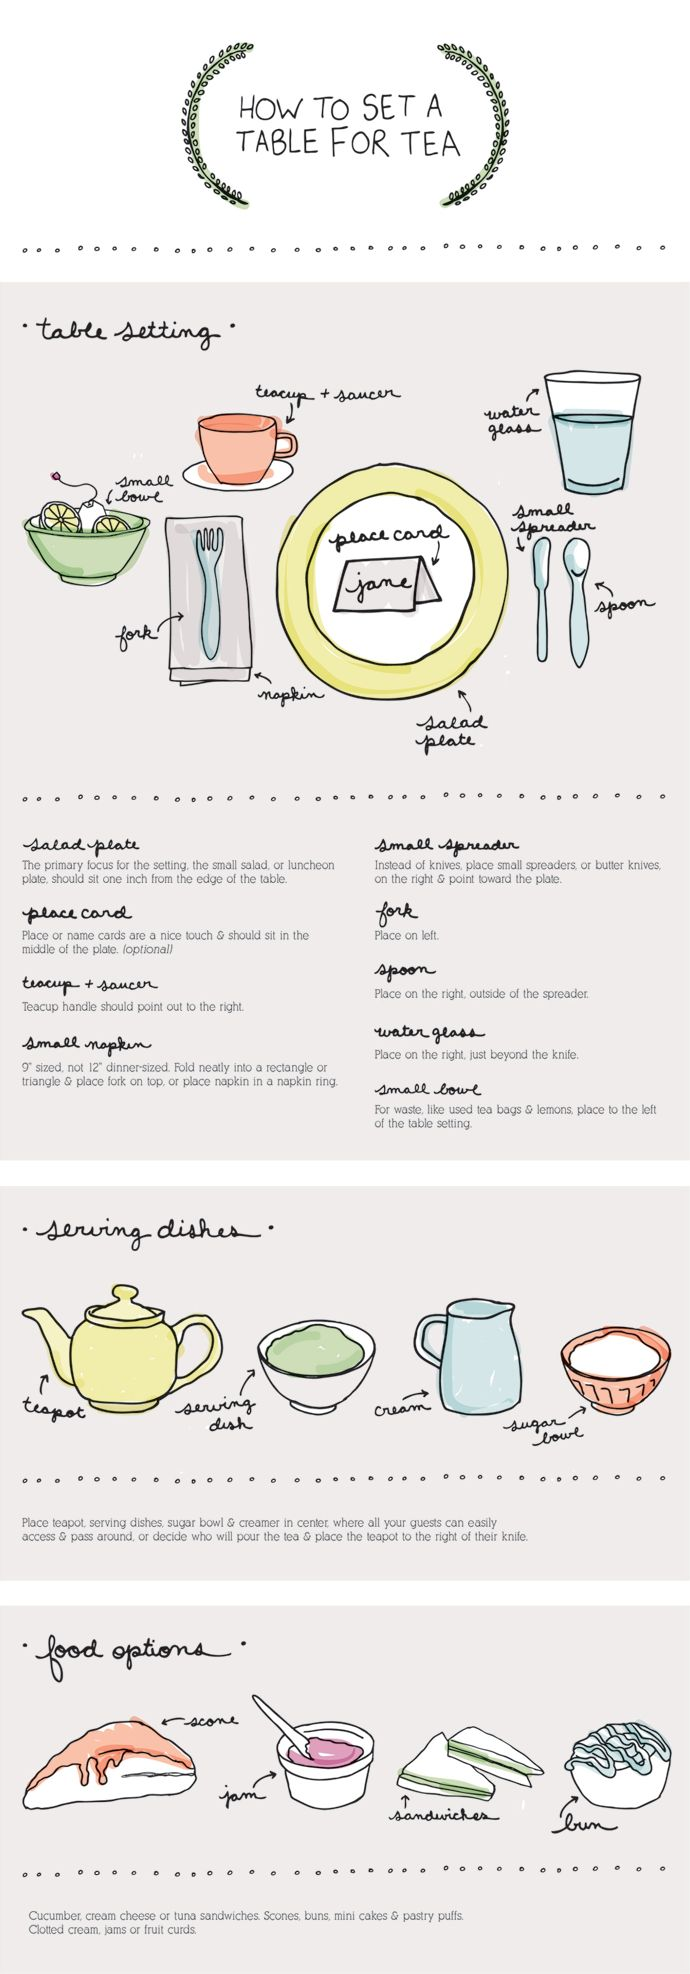 How to Set a Table for Tea - Infographic